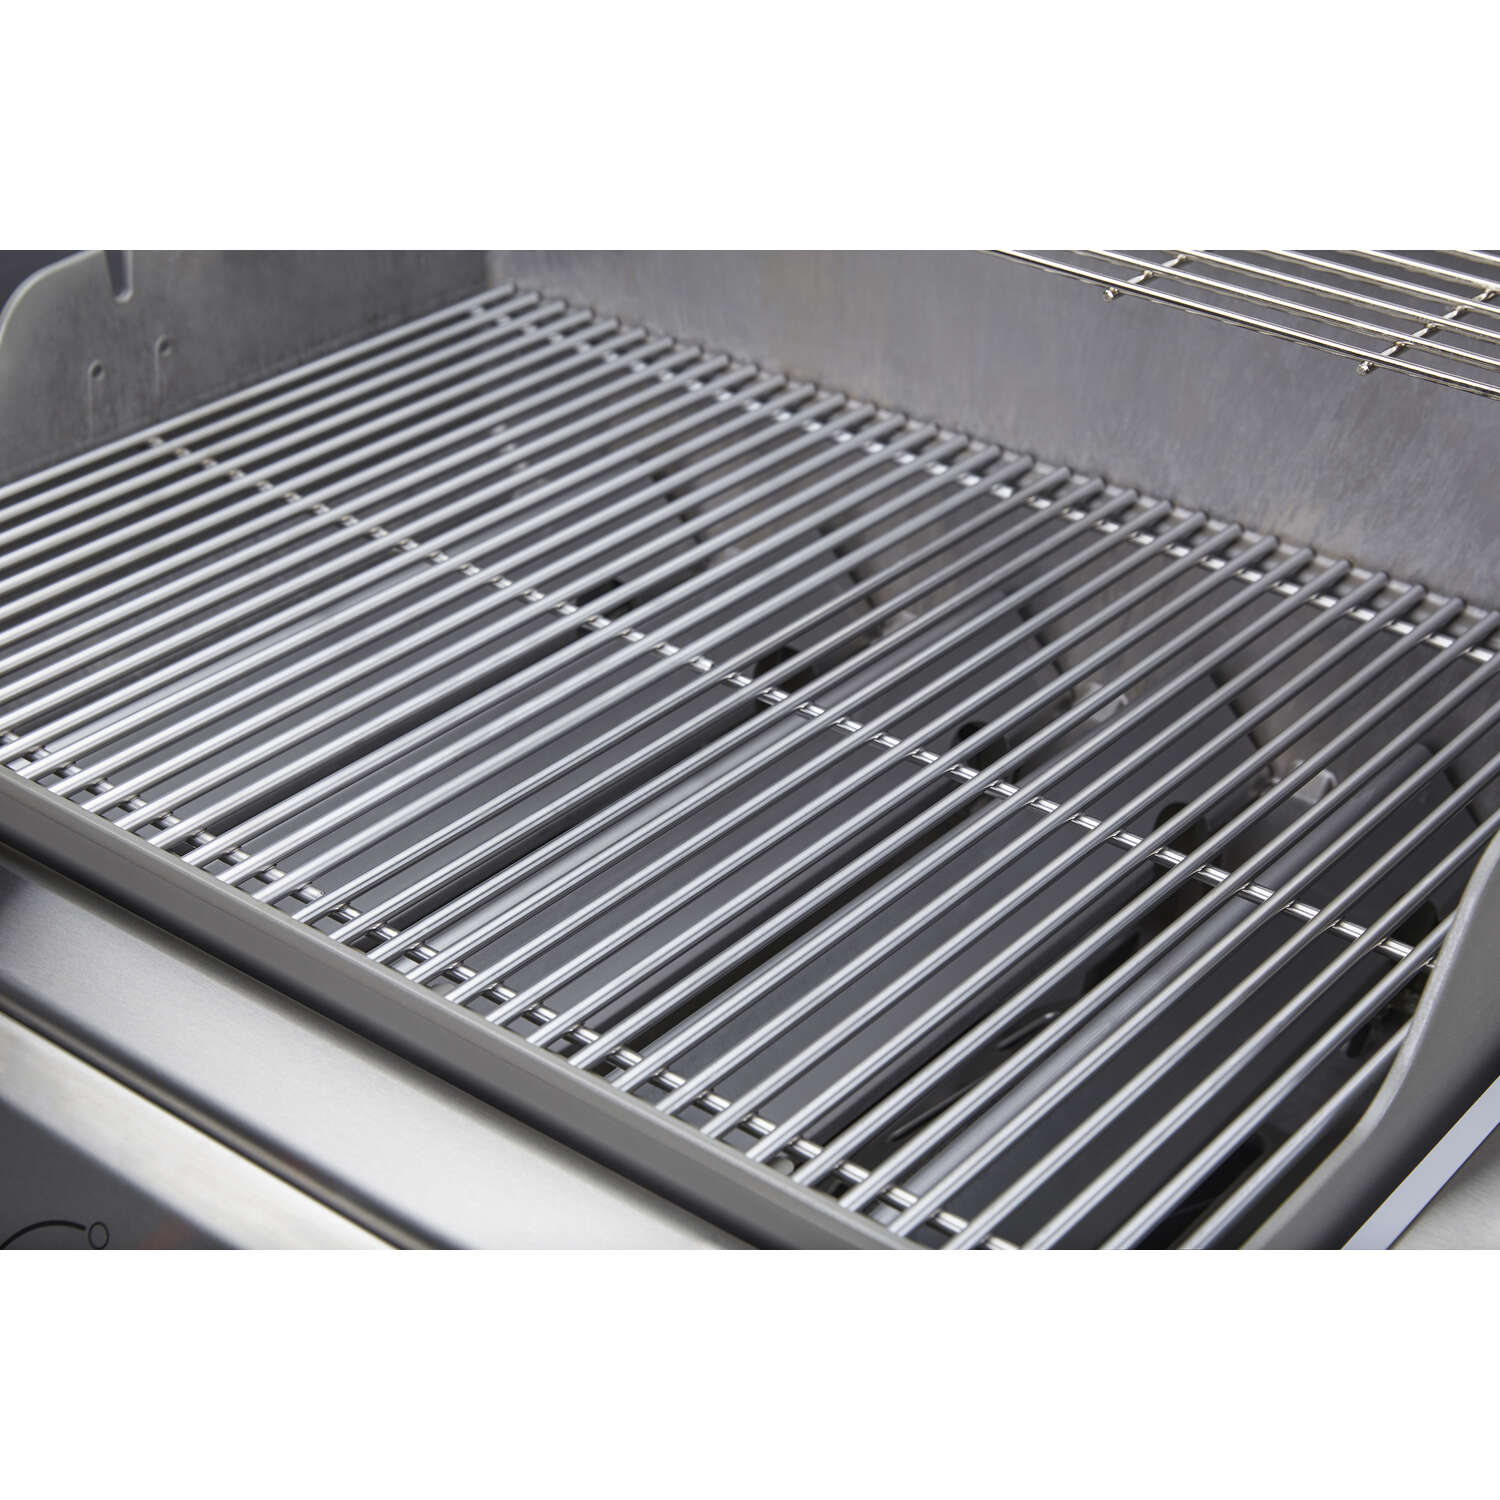 Weber  Genesis II LX E-240  2 burners Natural Gas  Black  Grill  29000 BTU